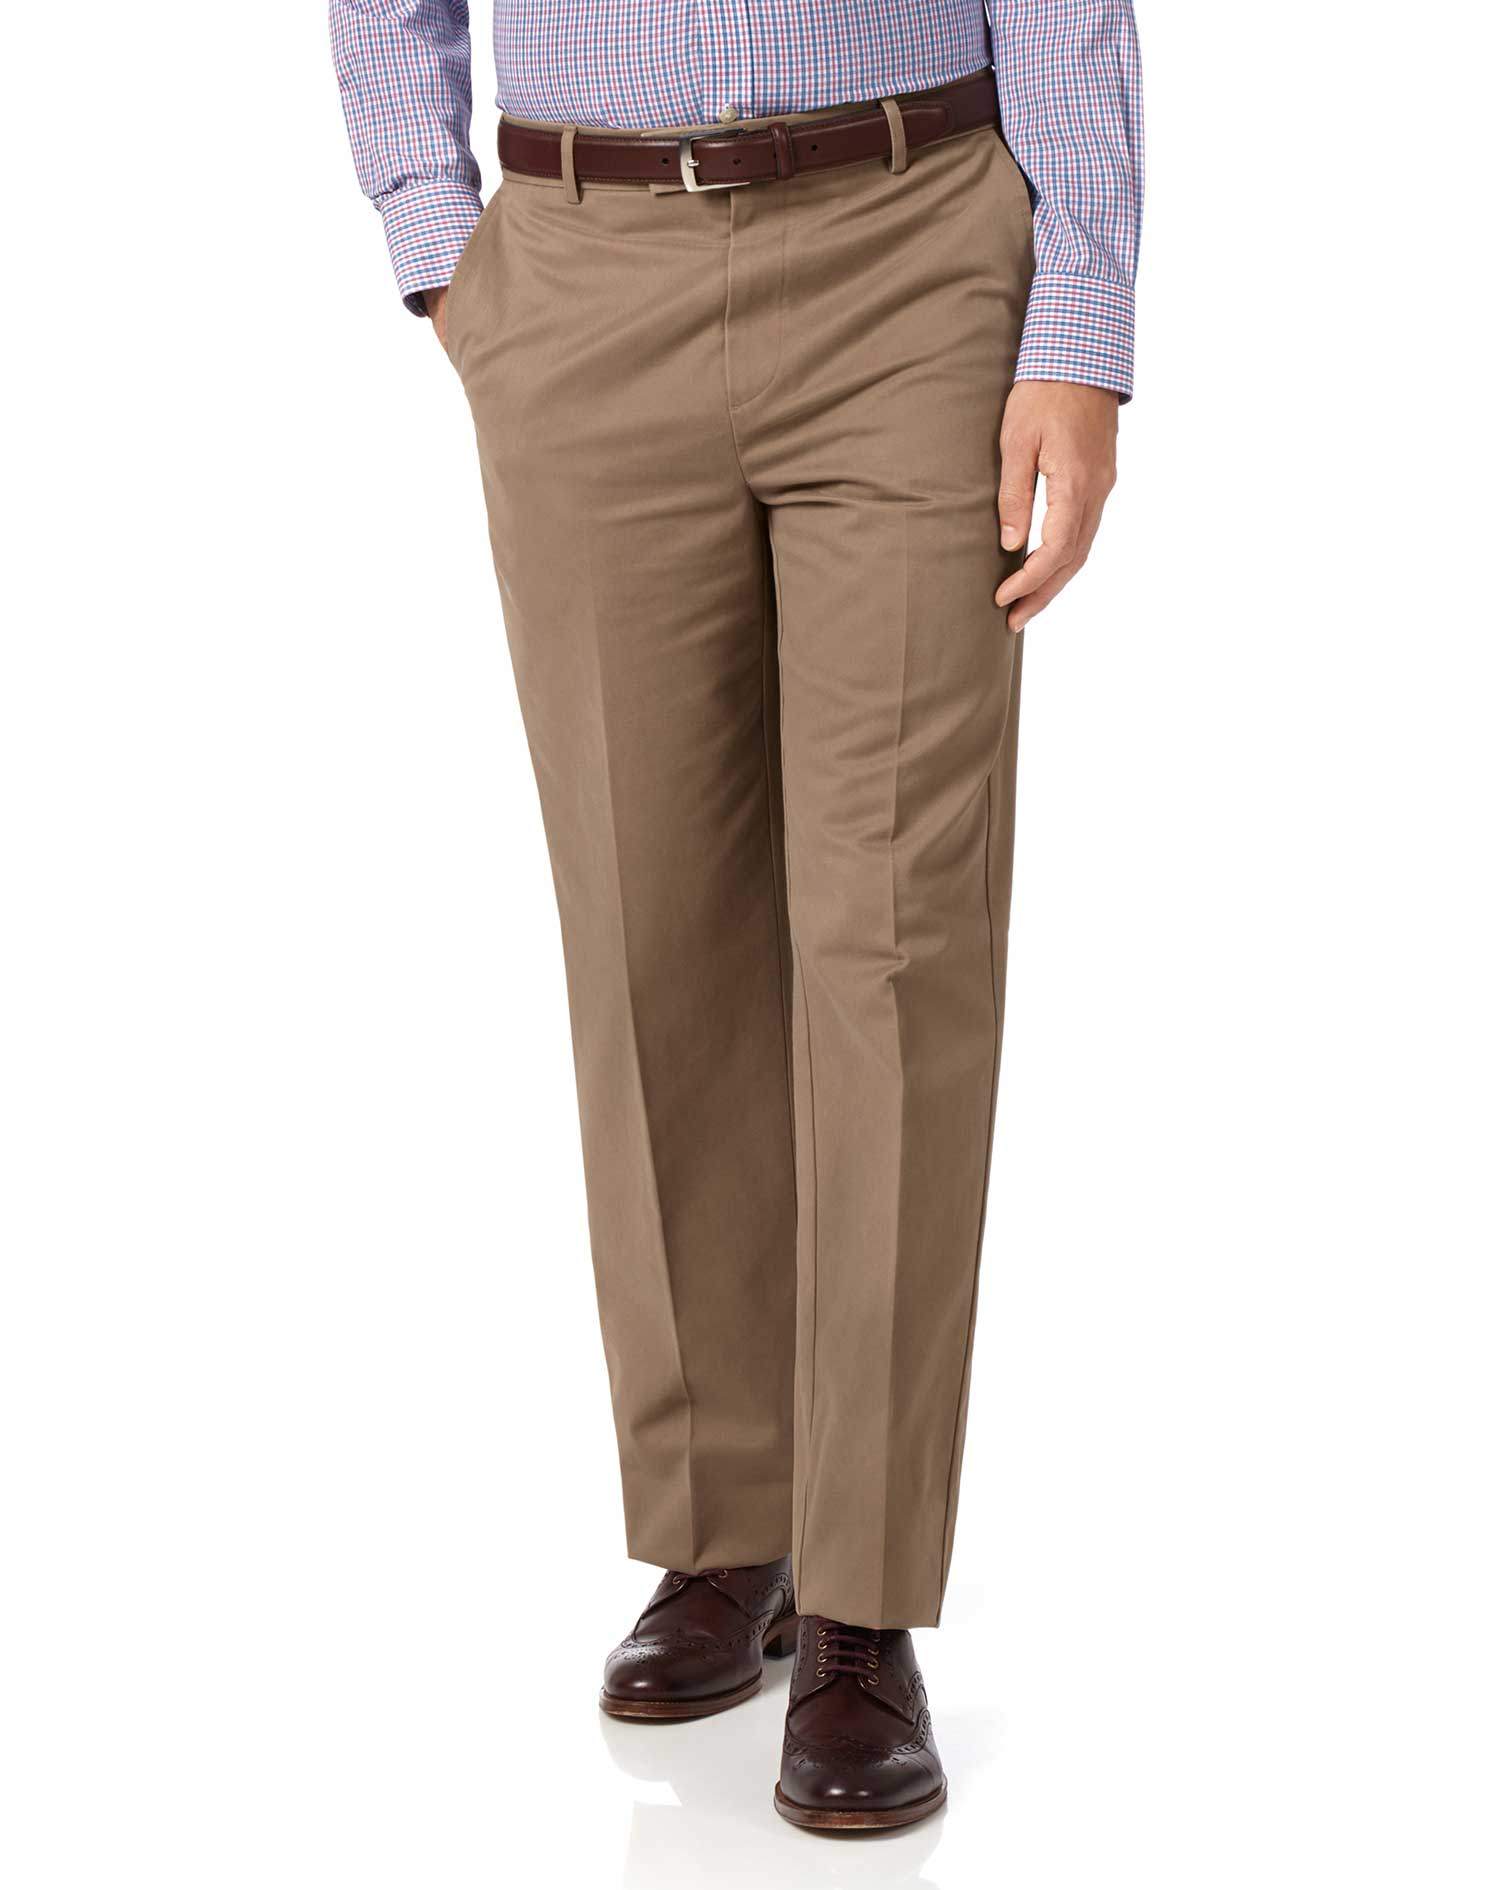 Tan Classic Fit Flat Front Non-Iron Cotton Chino Trousers Size W36 L30 by Charles Tyrwhitt